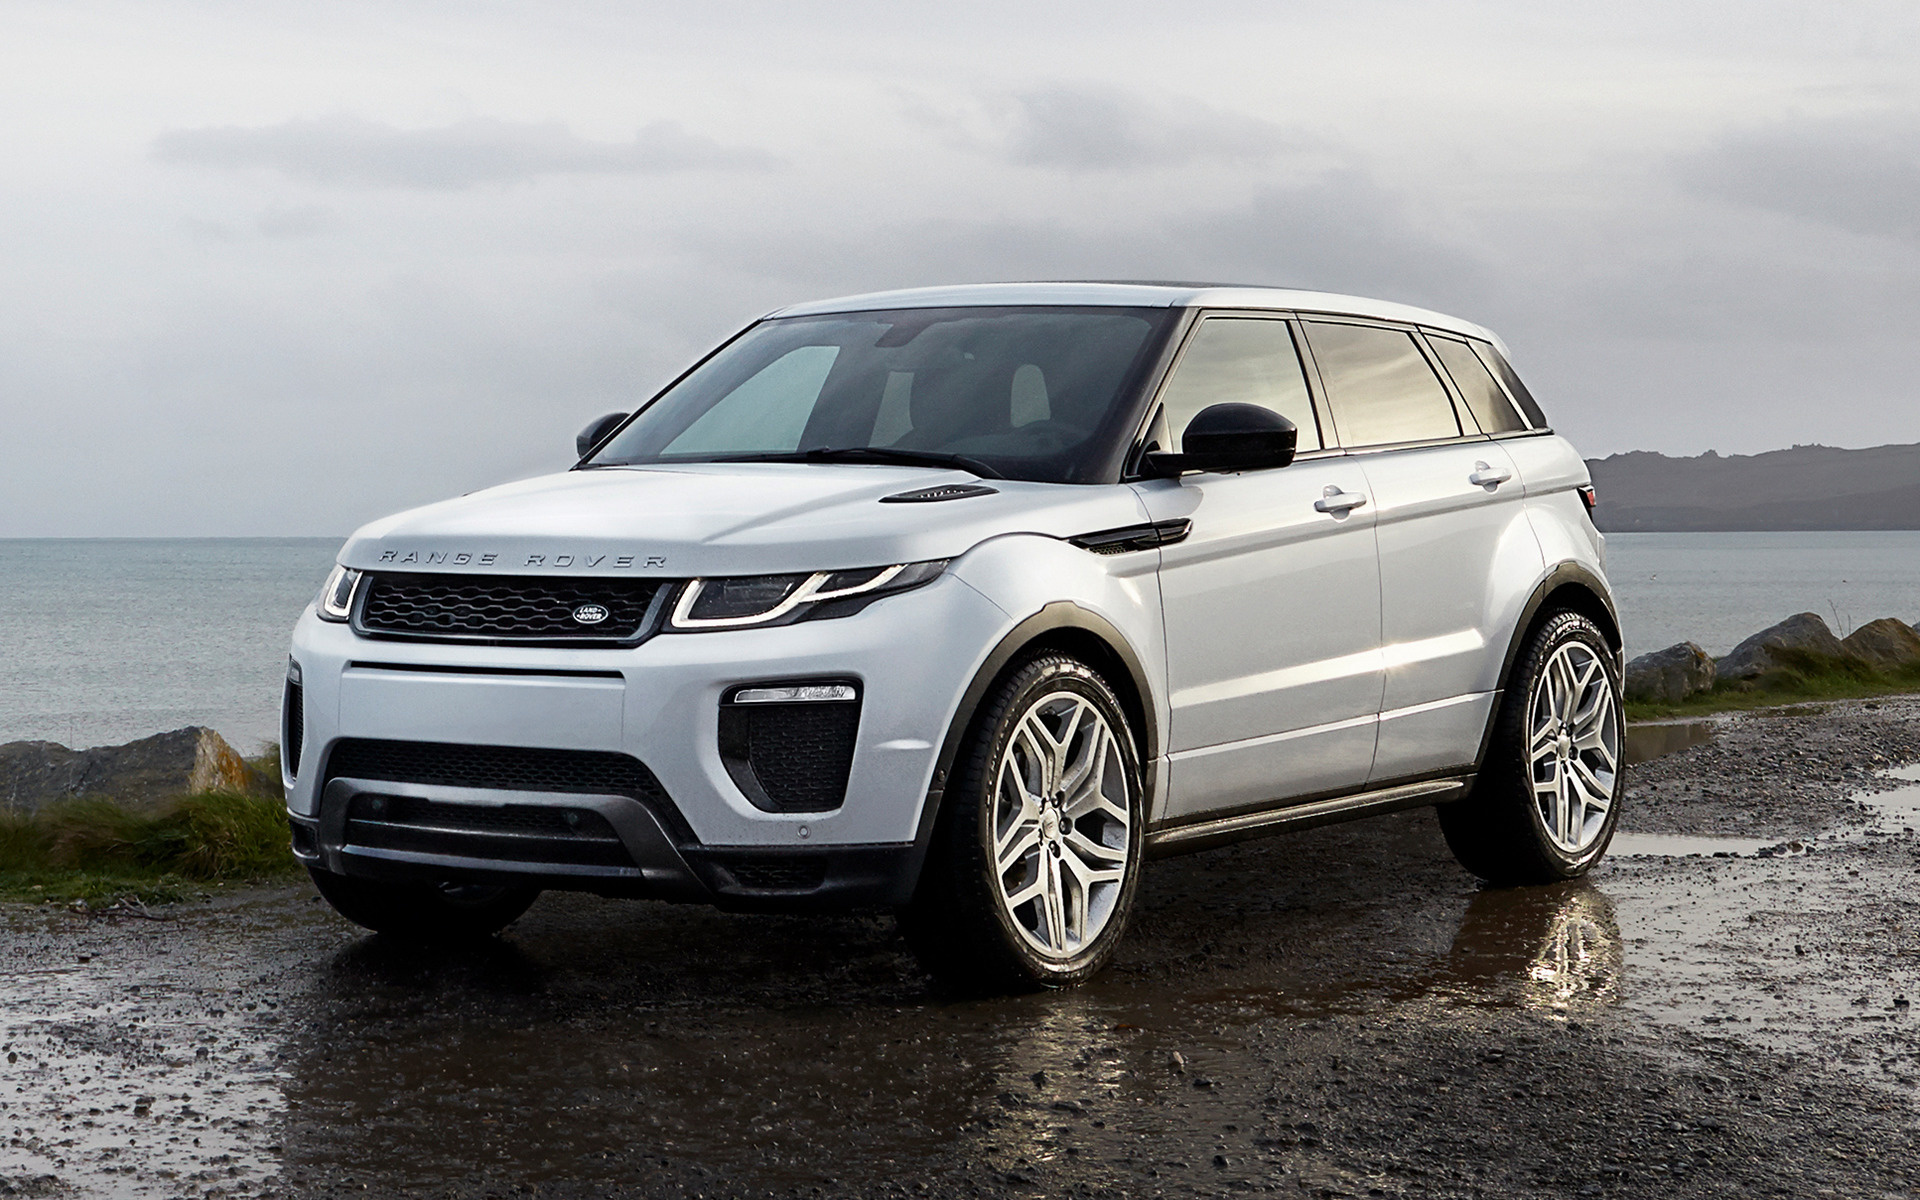 Range Rover Evoque HSE Dynamic 2015 Wallpapers and HD